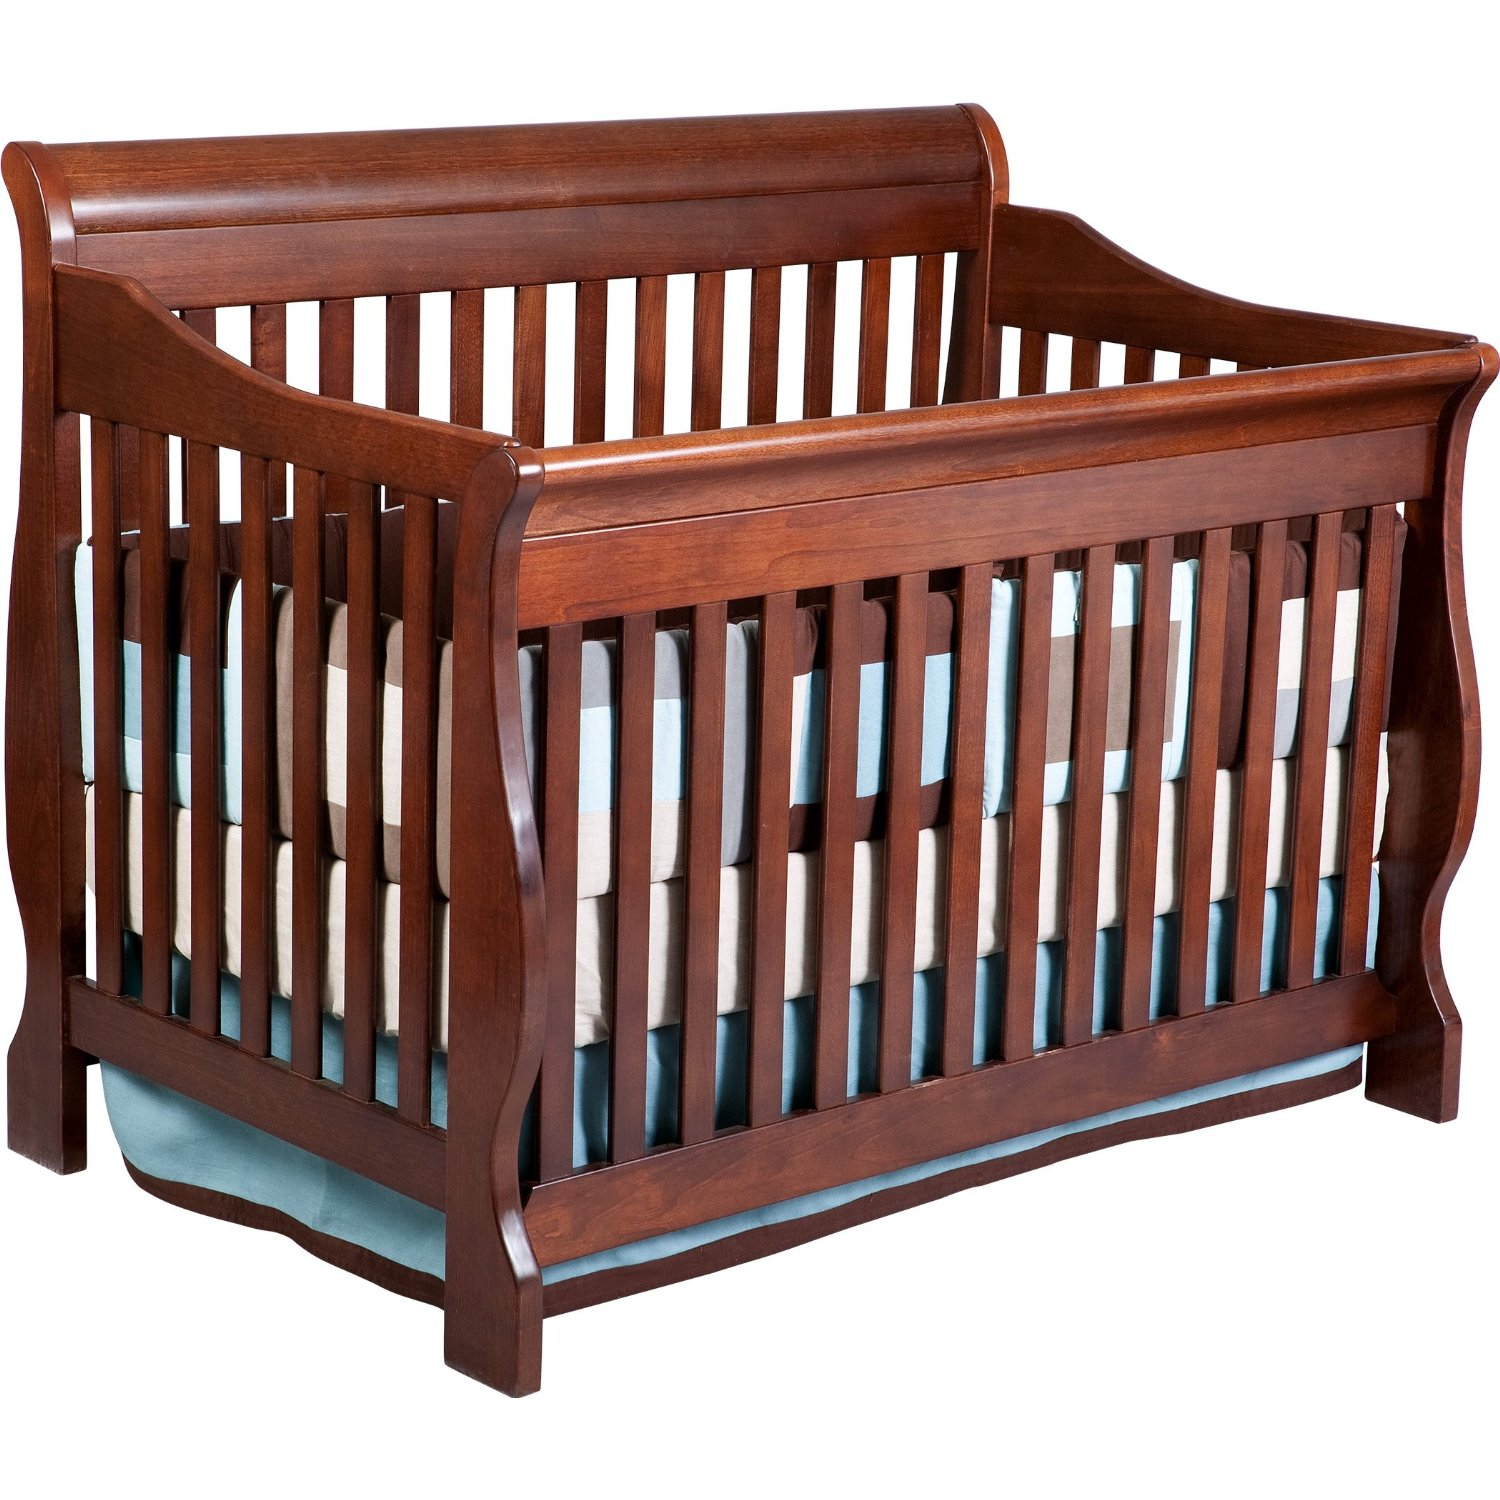 Delta Crib To Toddler Bed